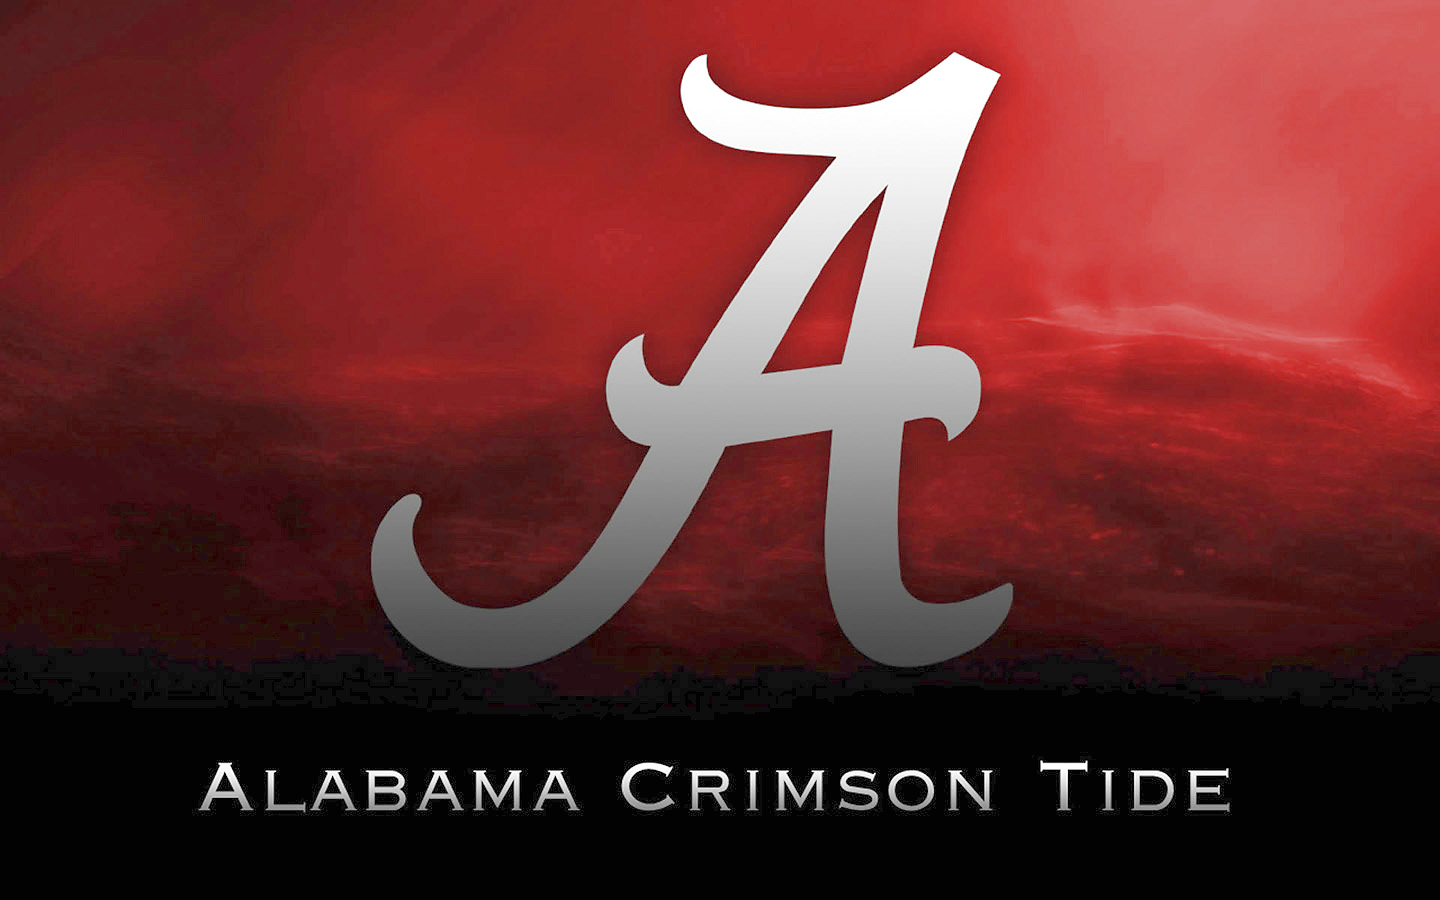 Alabama Crimson Tide Desktop Wallpapers 1440x900